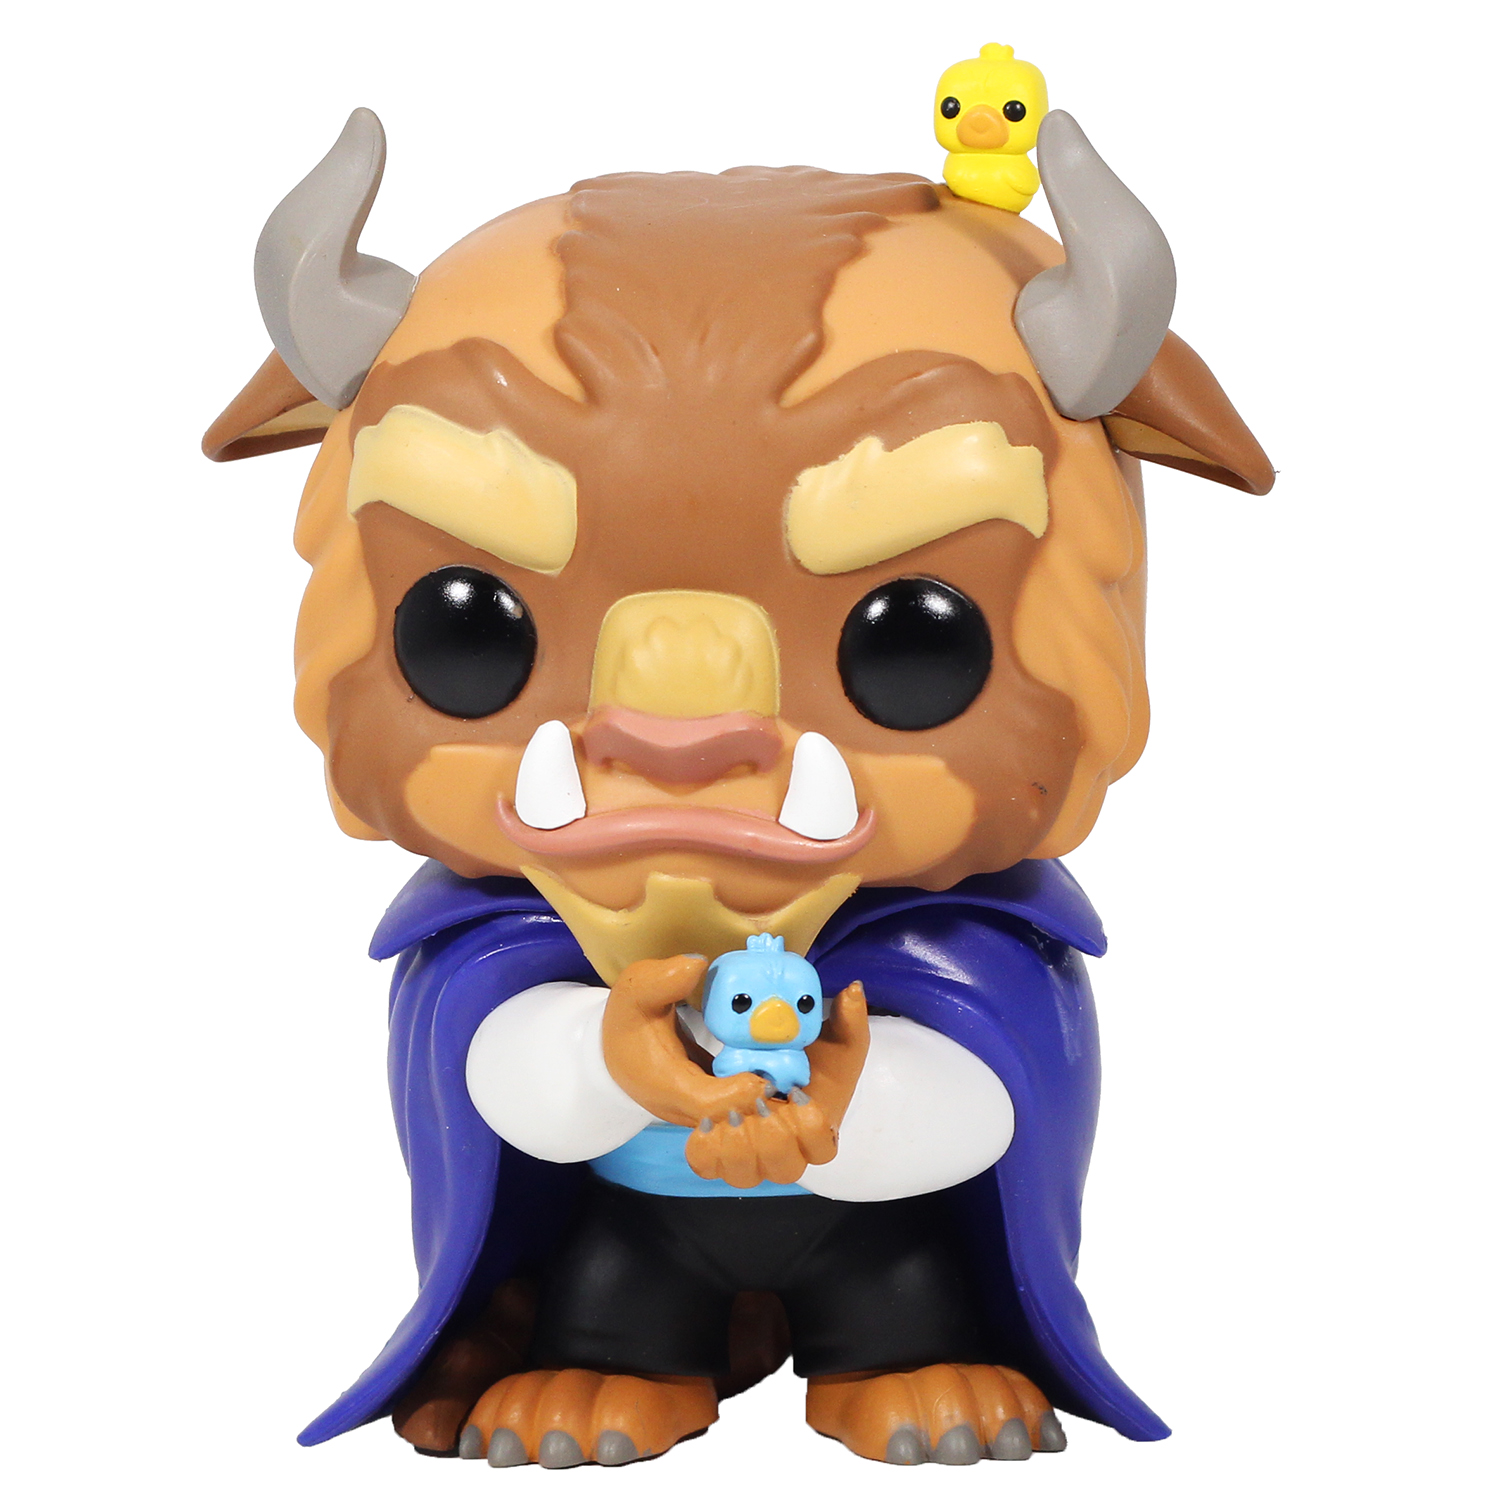 Funko Коллекционная фигурка FunkoPOP! Vinyl: Disney: Beauty and the Beast: The Beast 12257